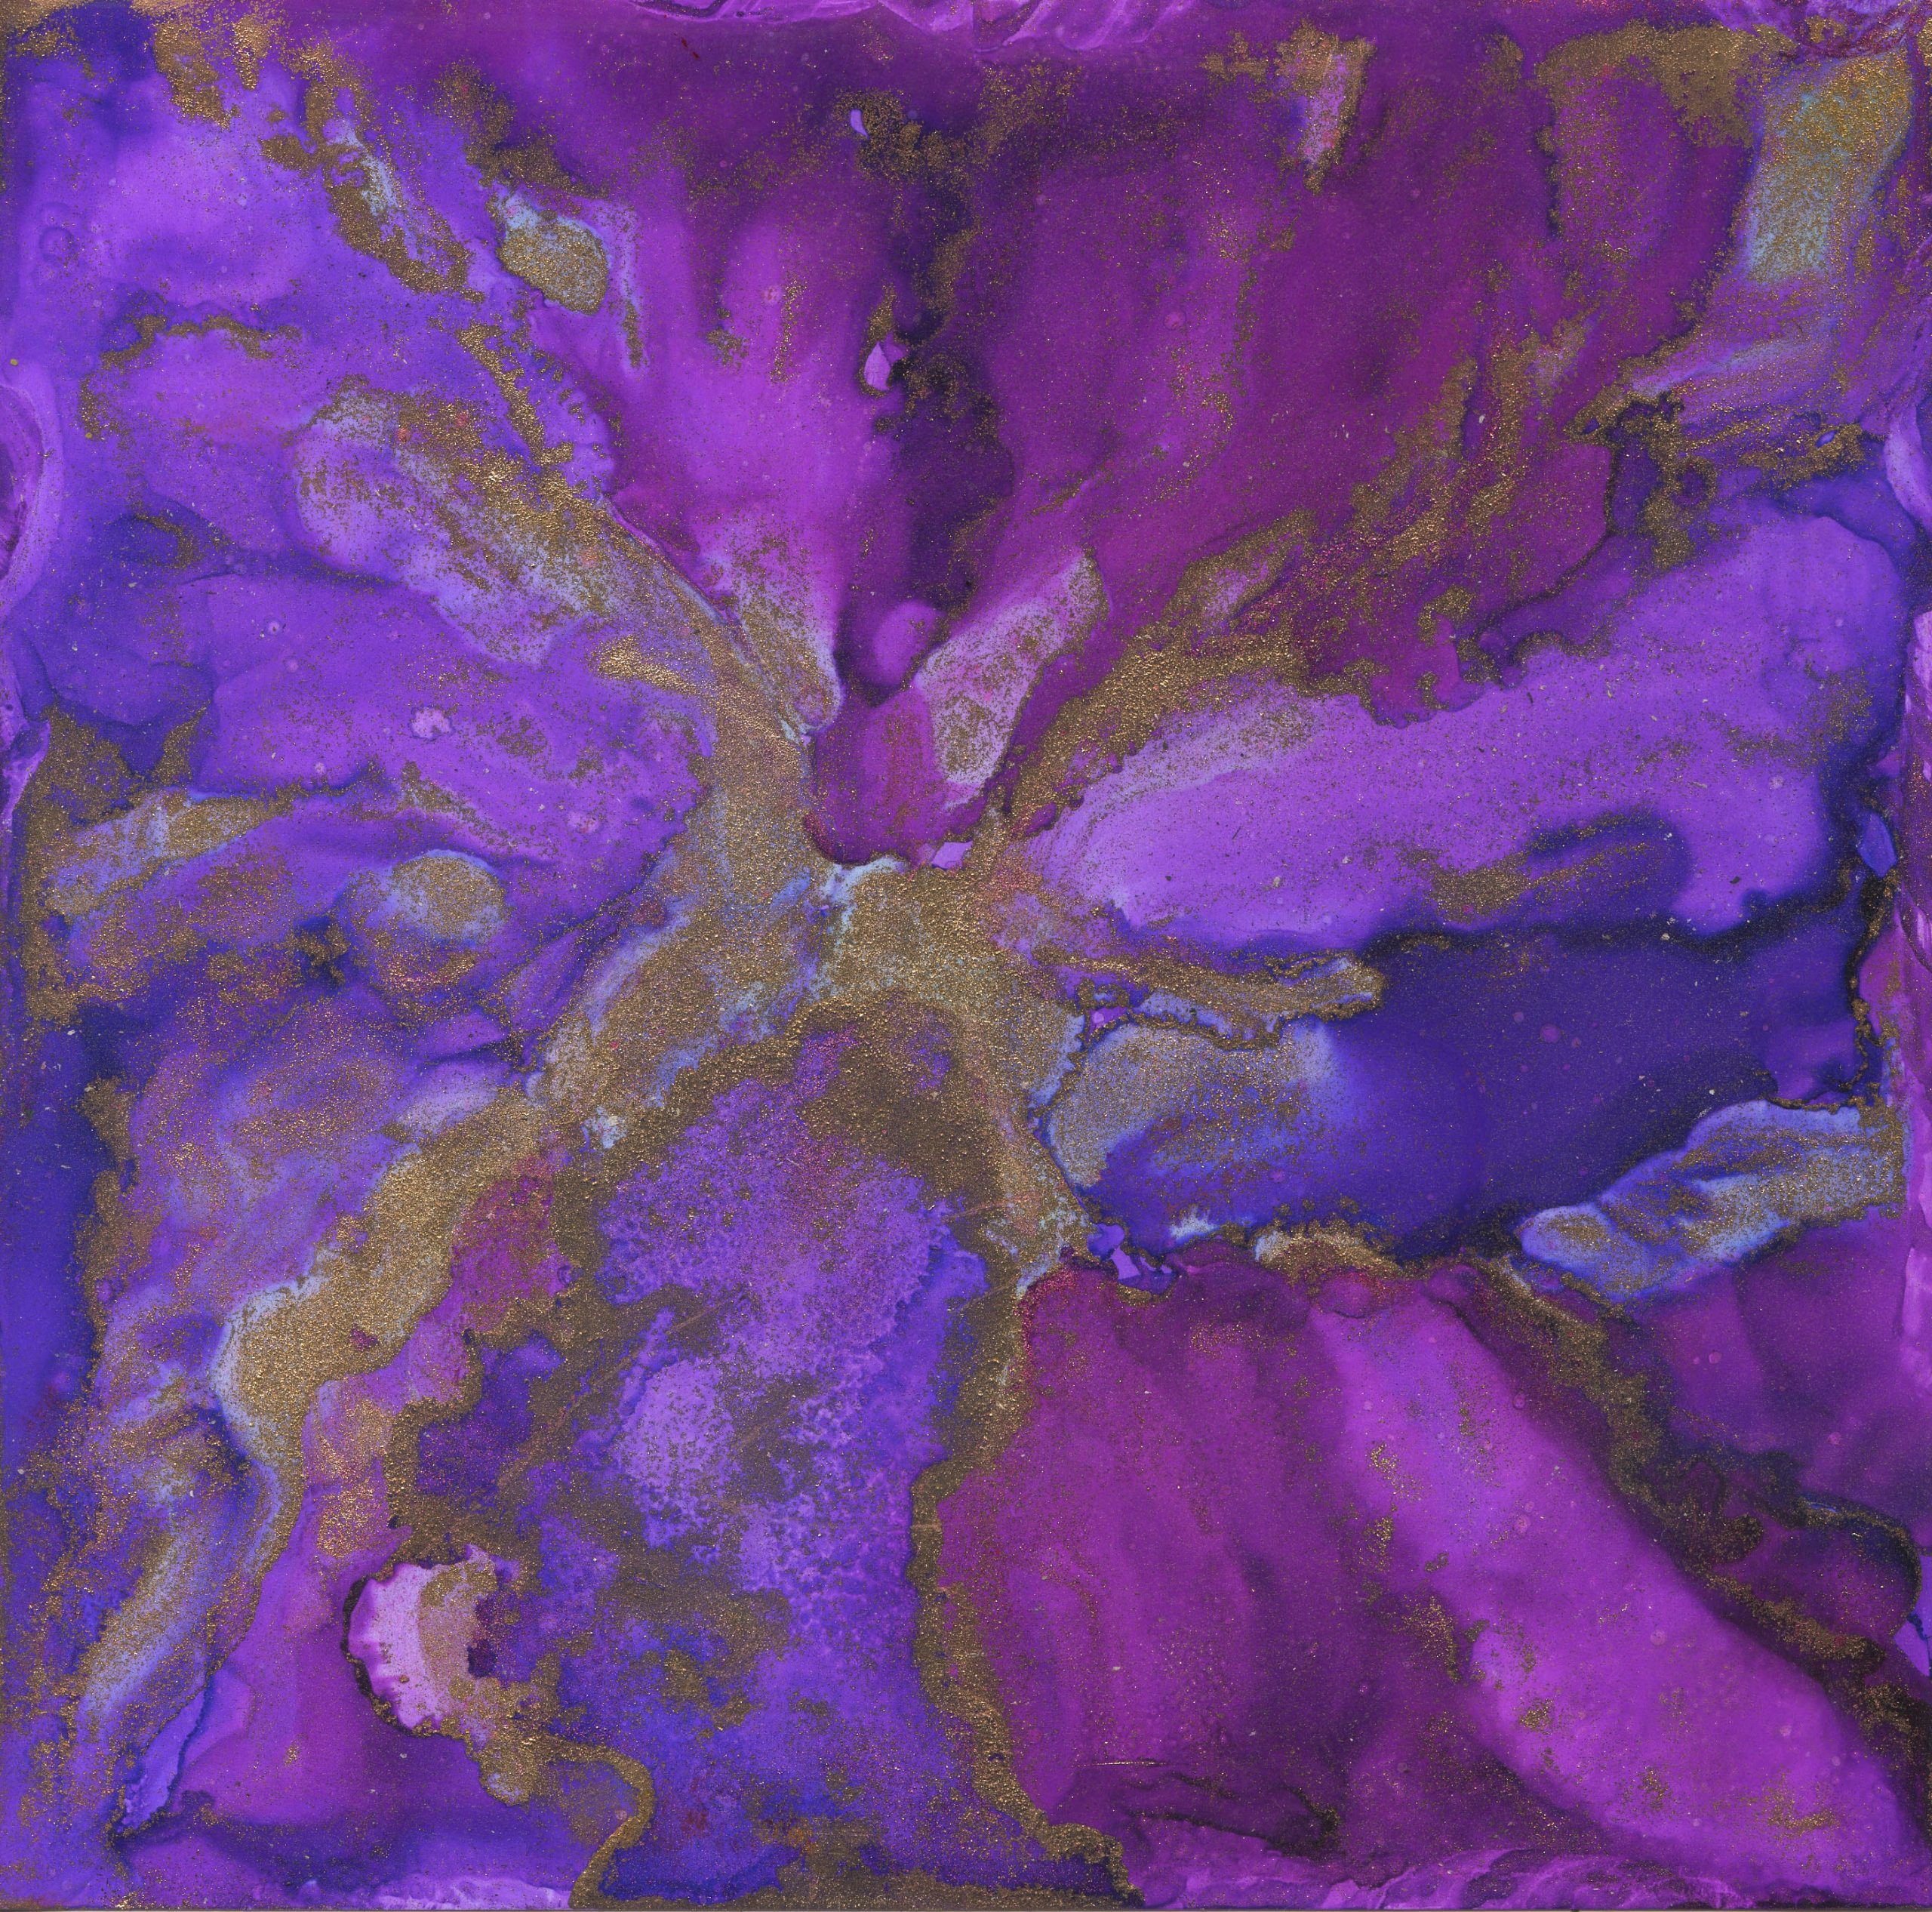 Flowing-Purple-Alcohol-Ink-7-X-7-$100